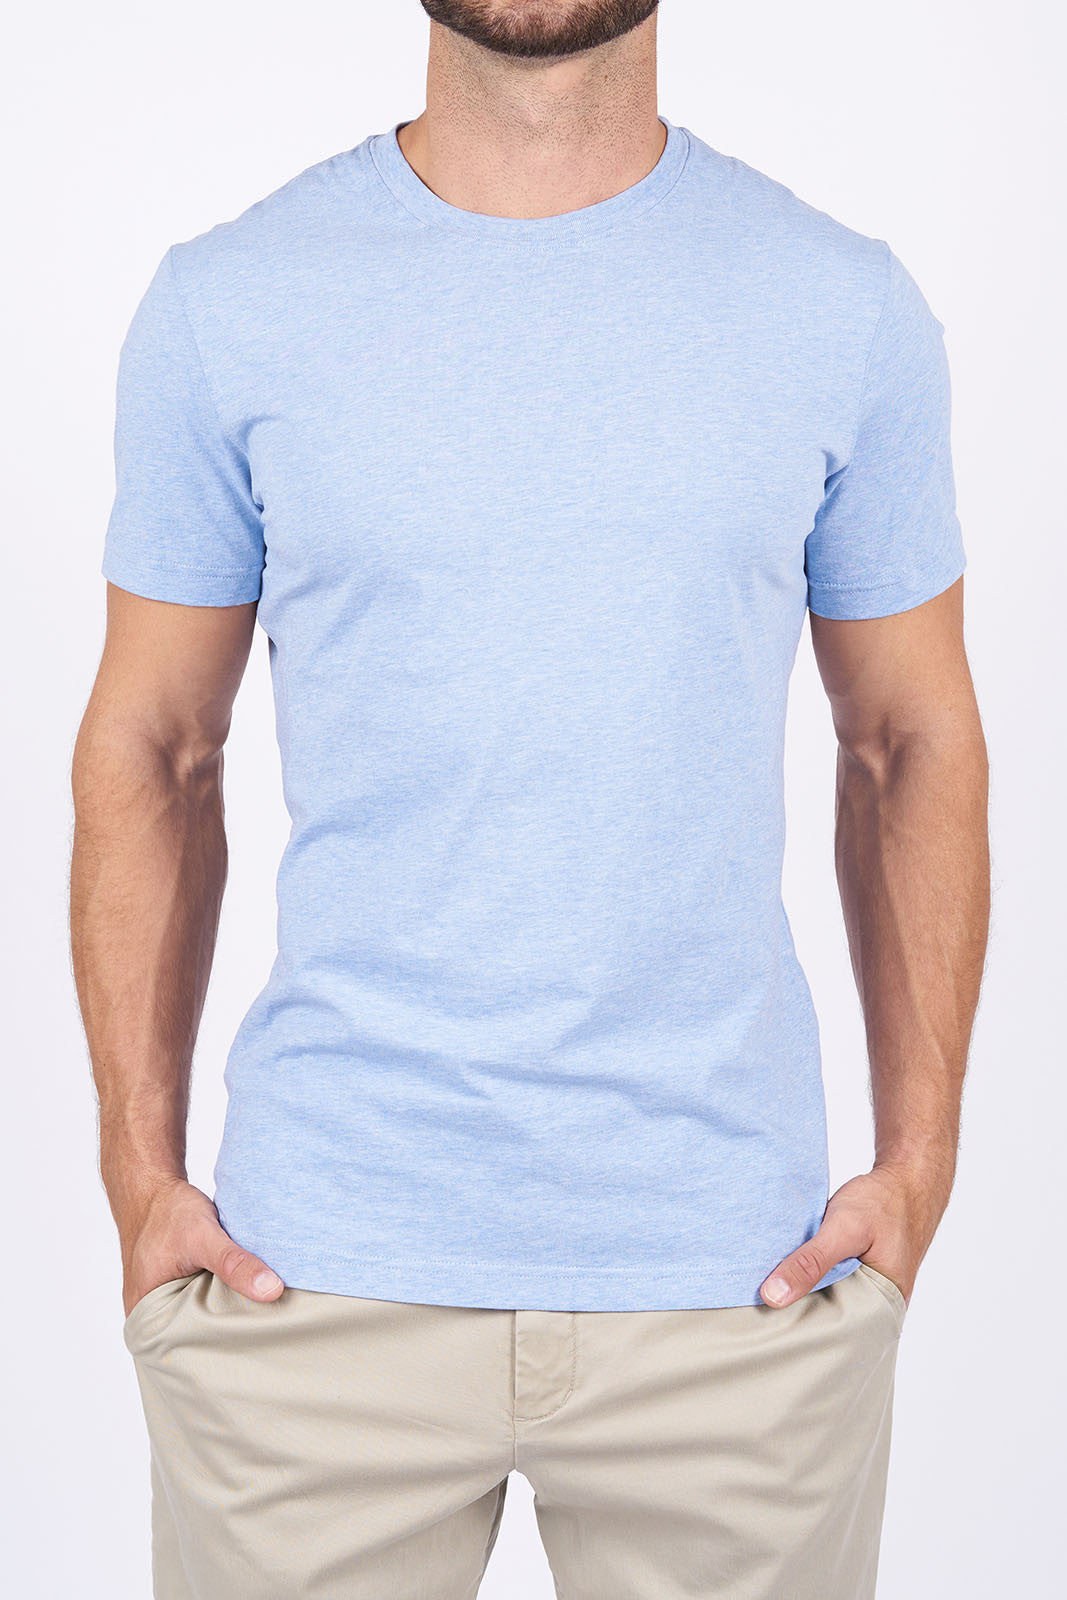 Heather Blue Long-Staple Cotton T-Shirt: Crew Neck